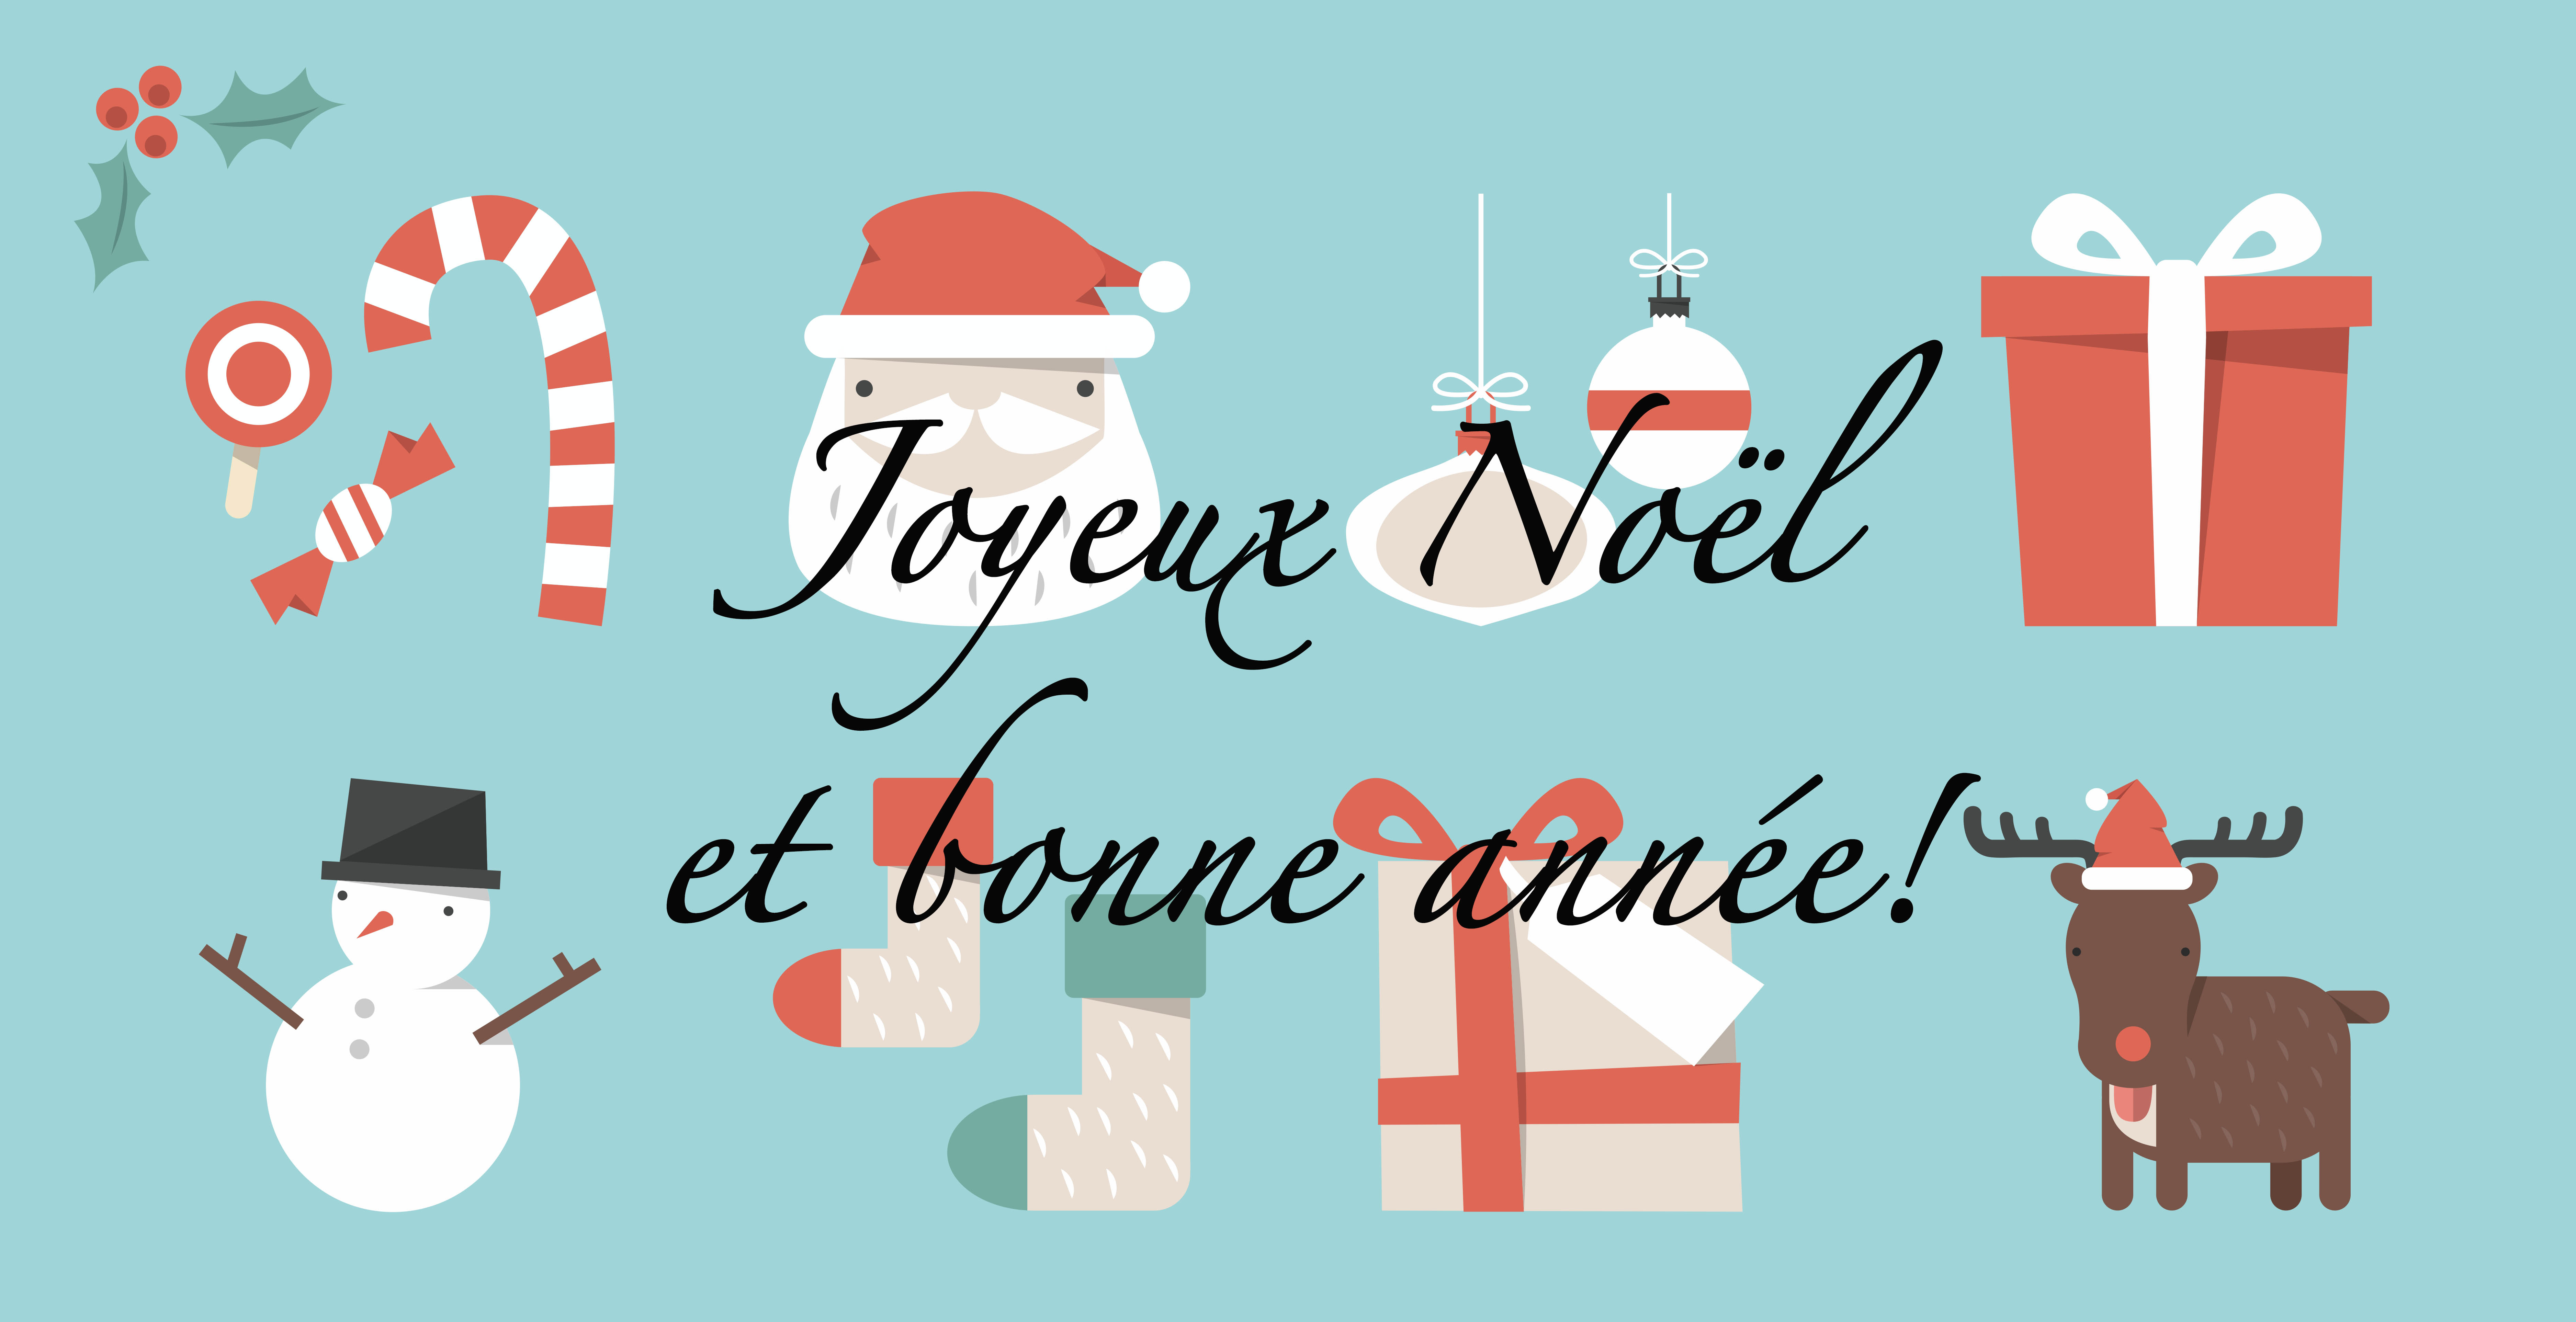 Joyeux Noël et bonne année